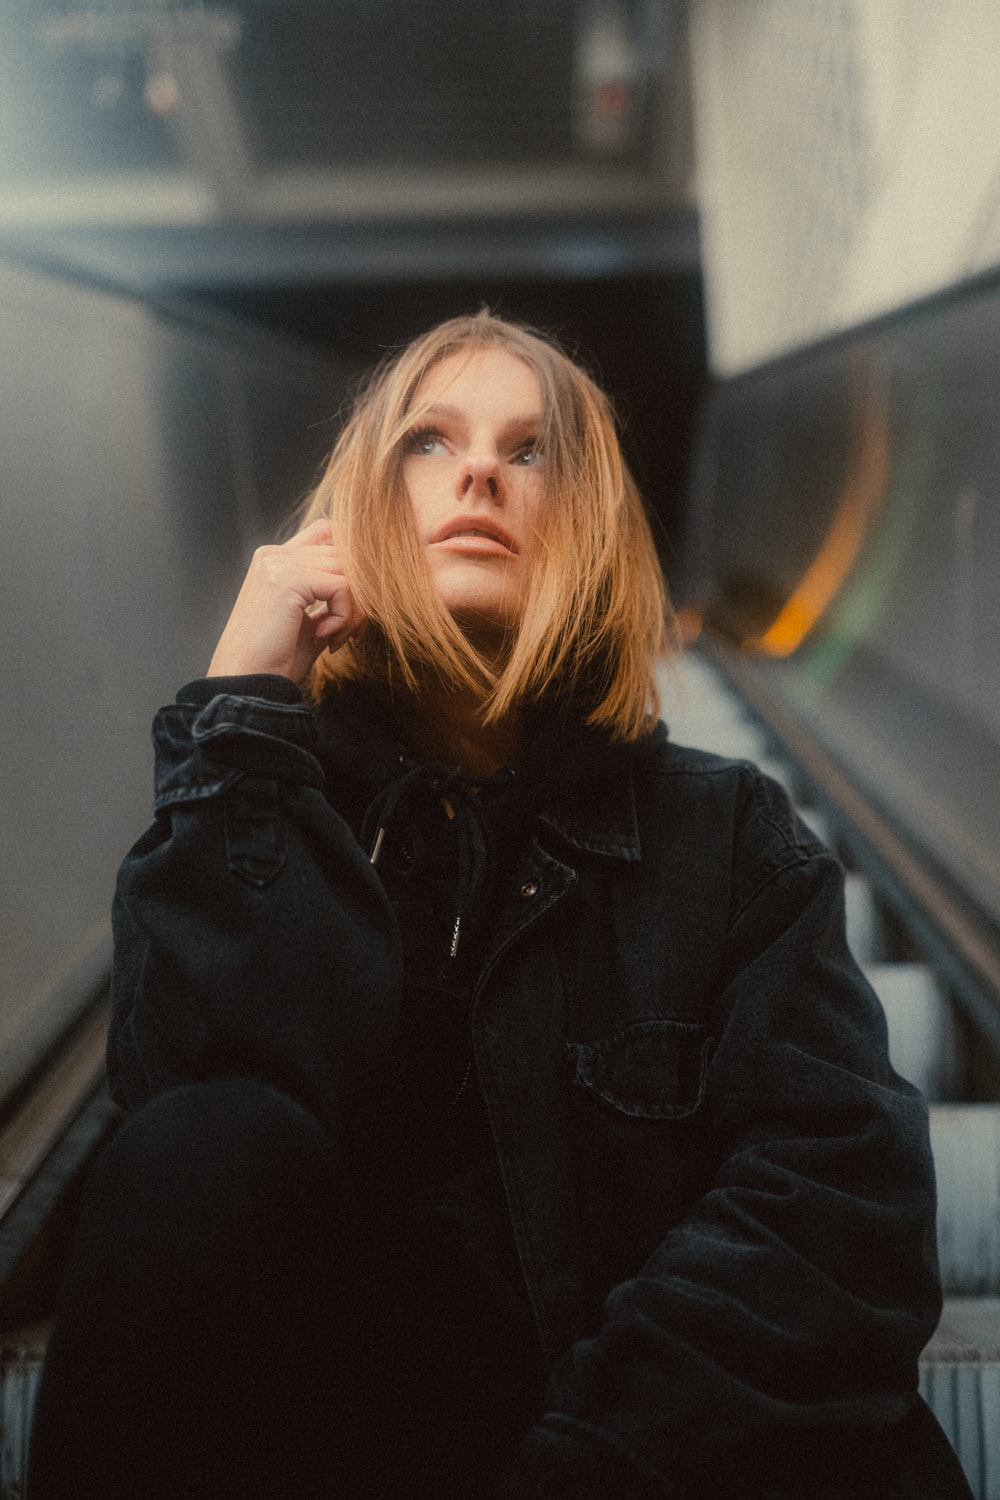 woman in black leather jacket sitting on train